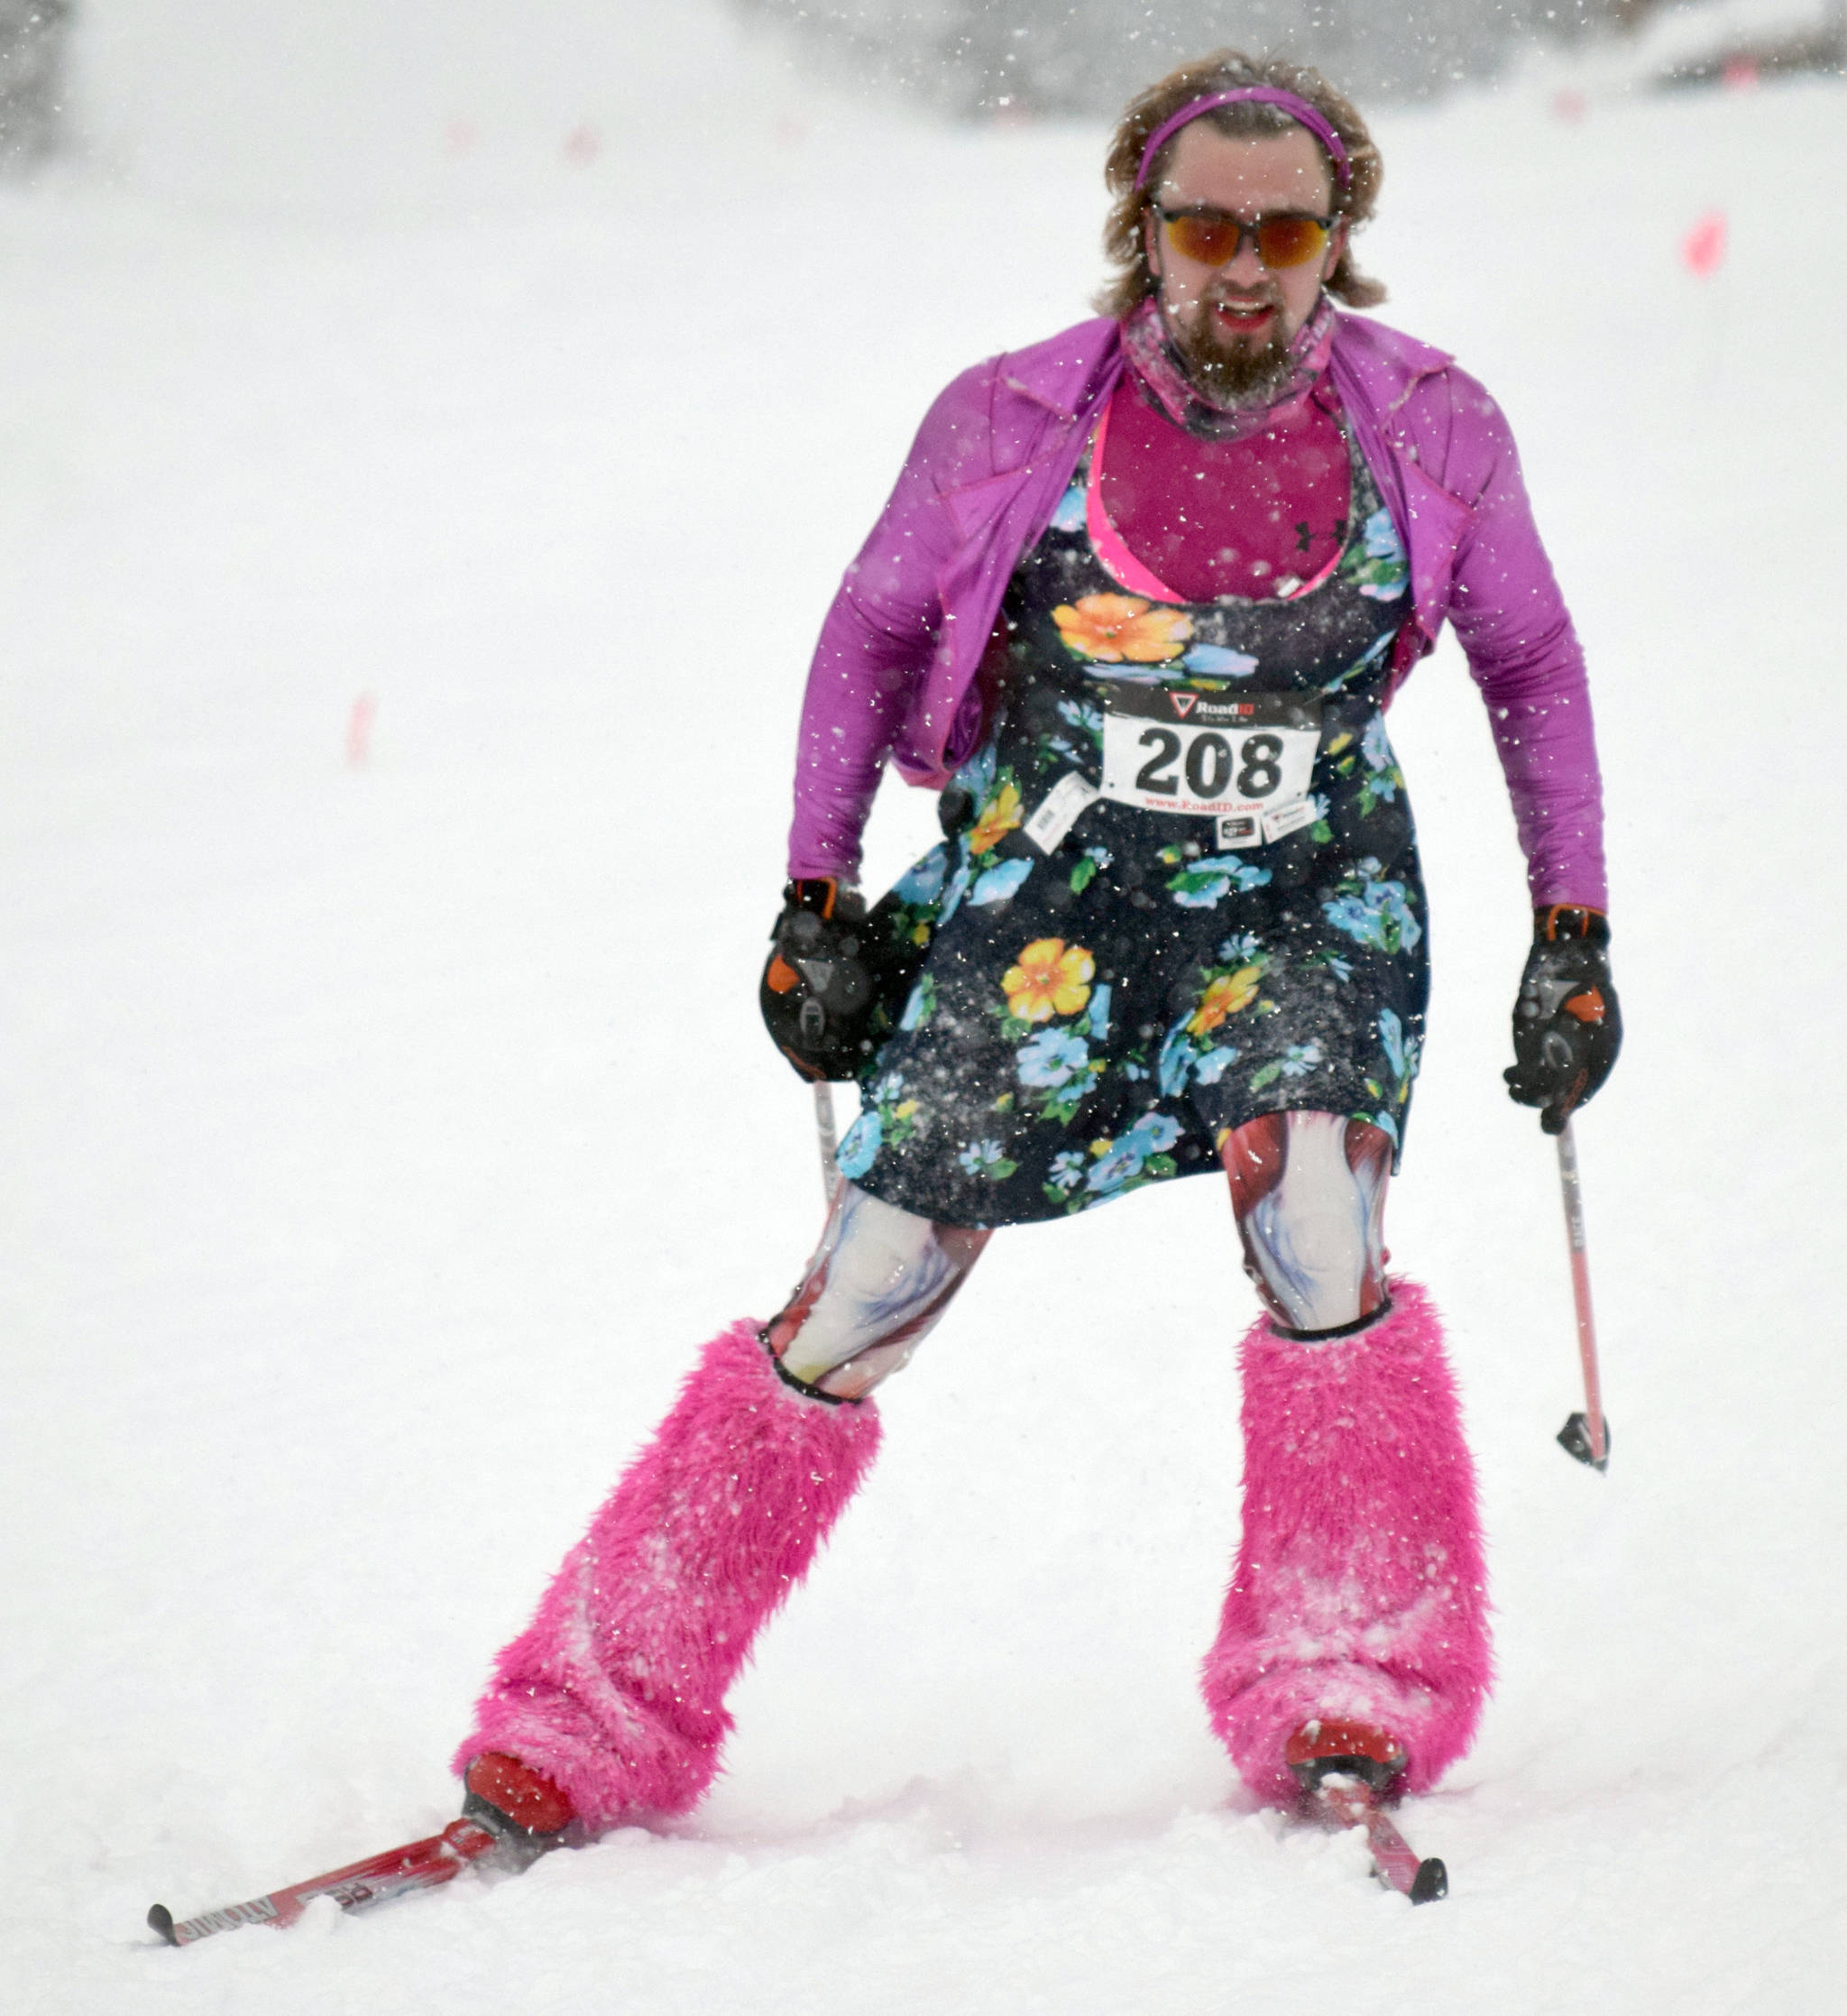 Nate Mole competes in the drag race Sunday, Feb. 3, 2019, at the Ski for Women at Tsalteshi Trails. (Photo by Jeff Helminiak/Peninsula Clarion)